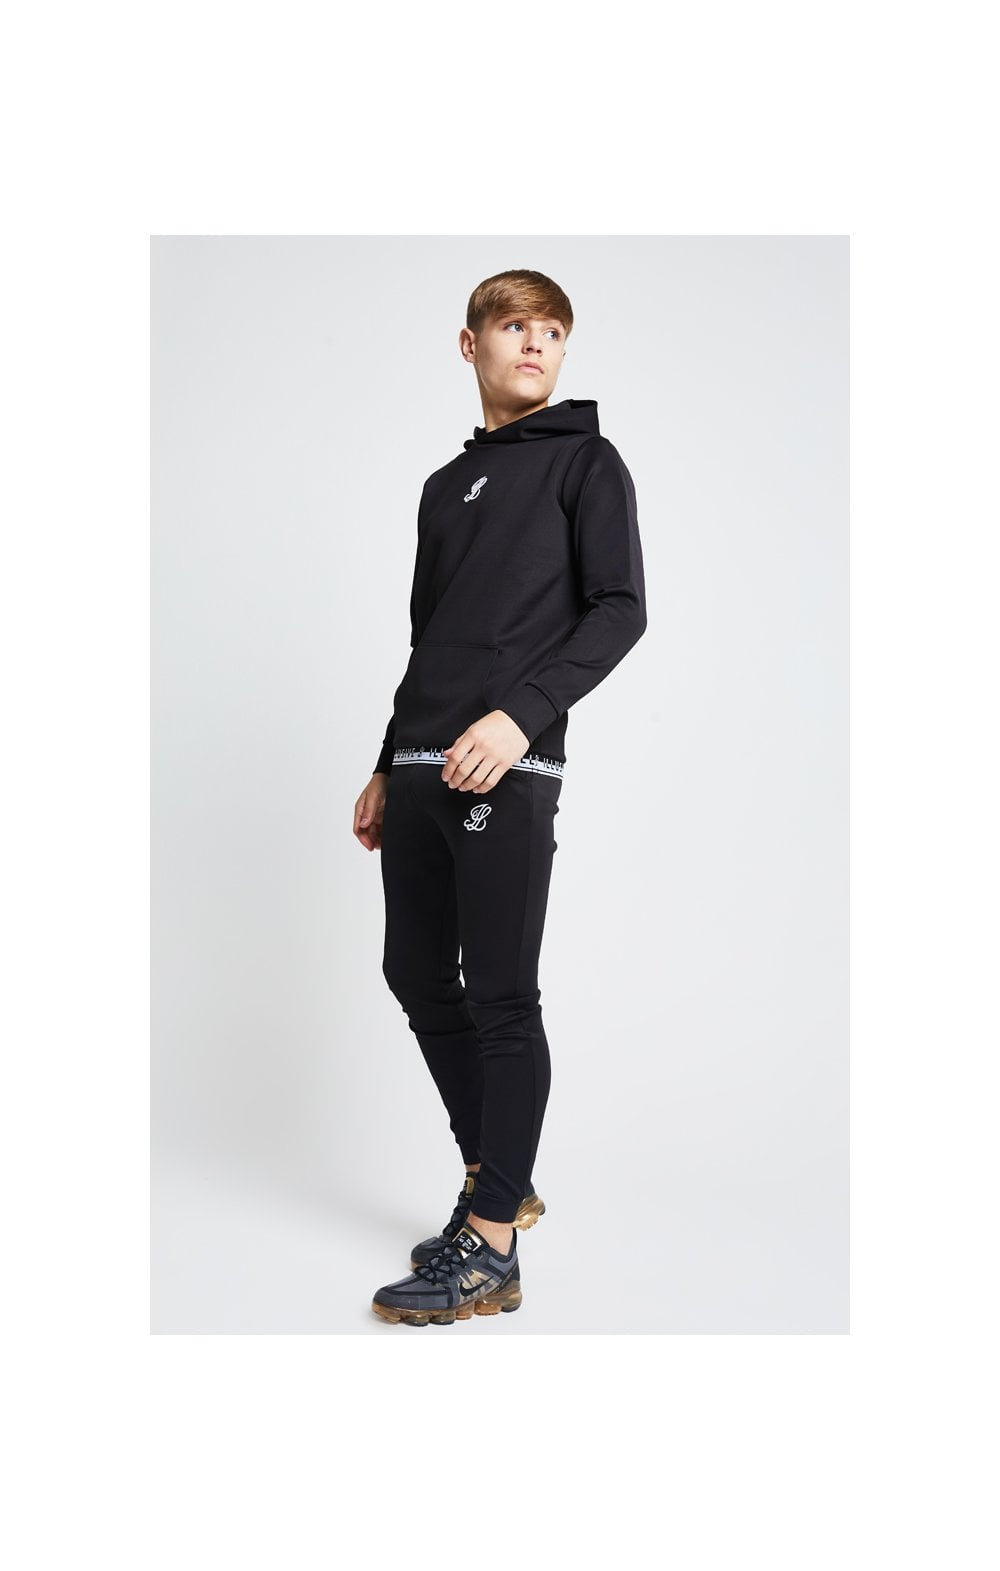 Illusive London Taped Overhead Hoodie - Black (2)